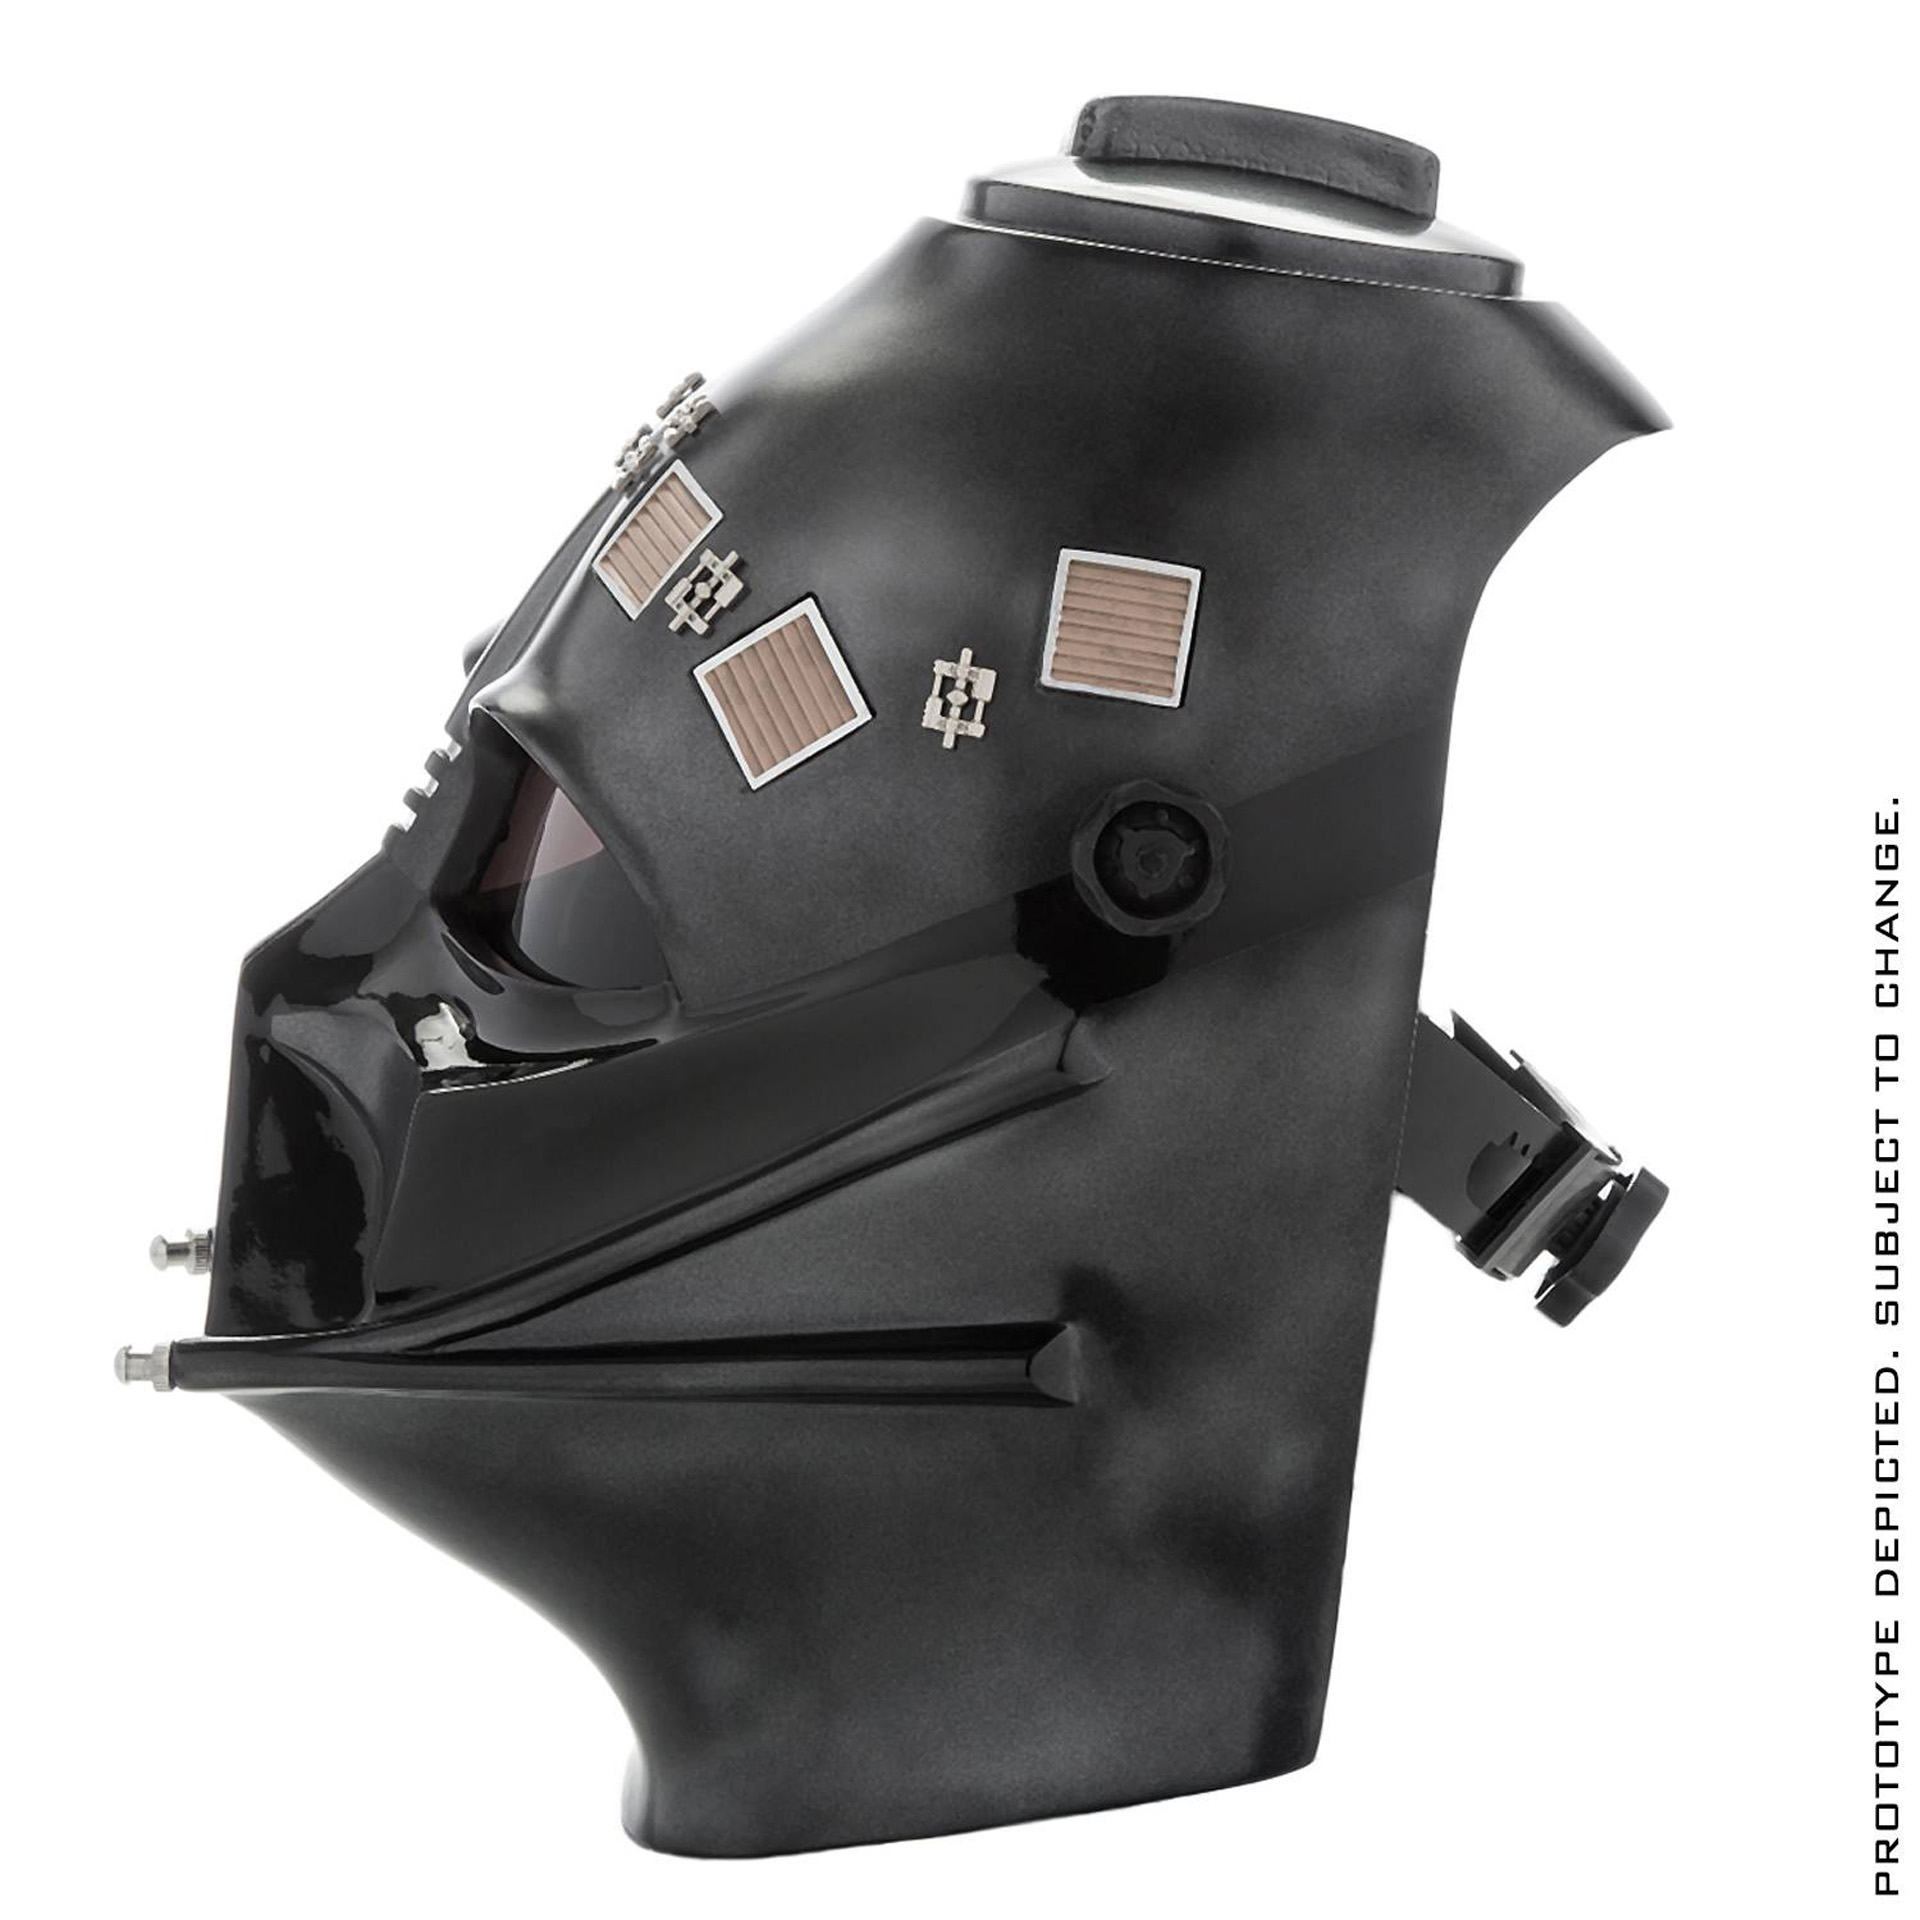 anovos 39 tie pilot costume and darth vader helmet. Black Bedroom Furniture Sets. Home Design Ideas